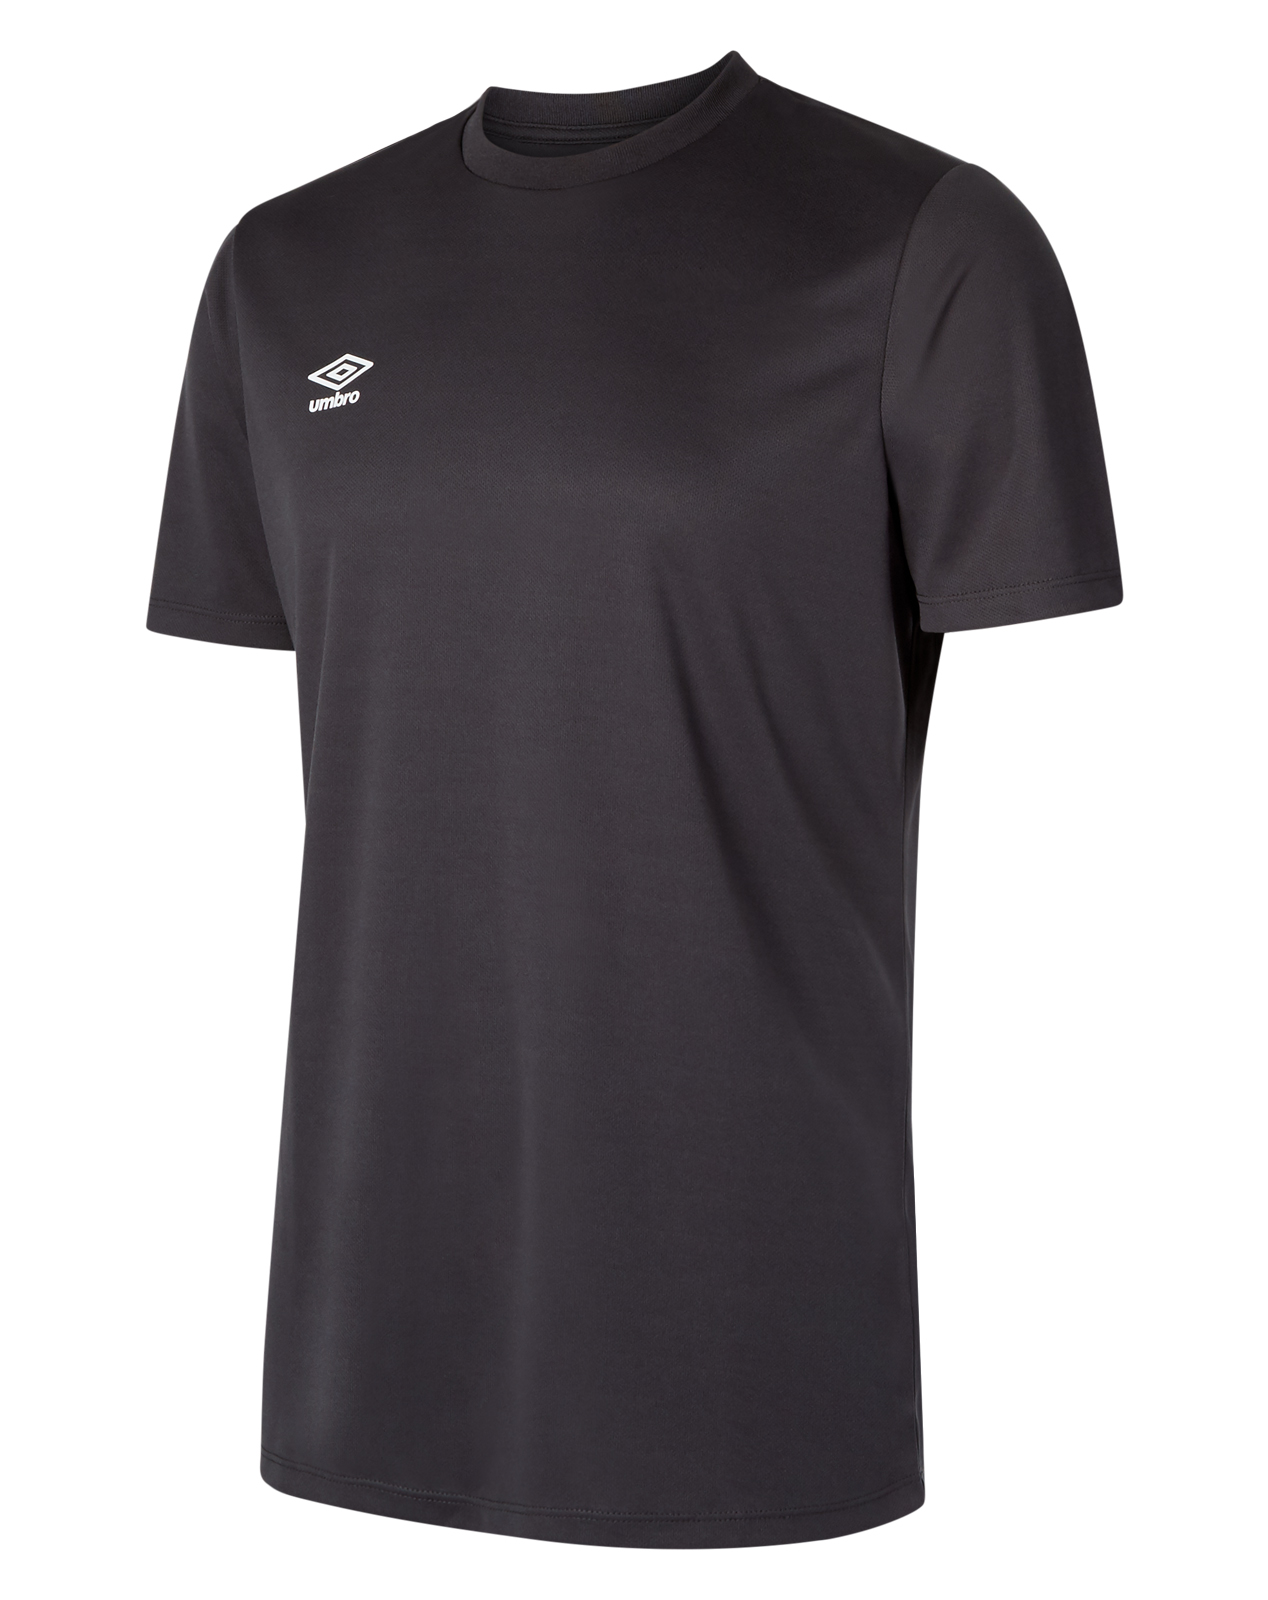 Short sleeve Umbro Club jersey in carbon  with white Umbro logo